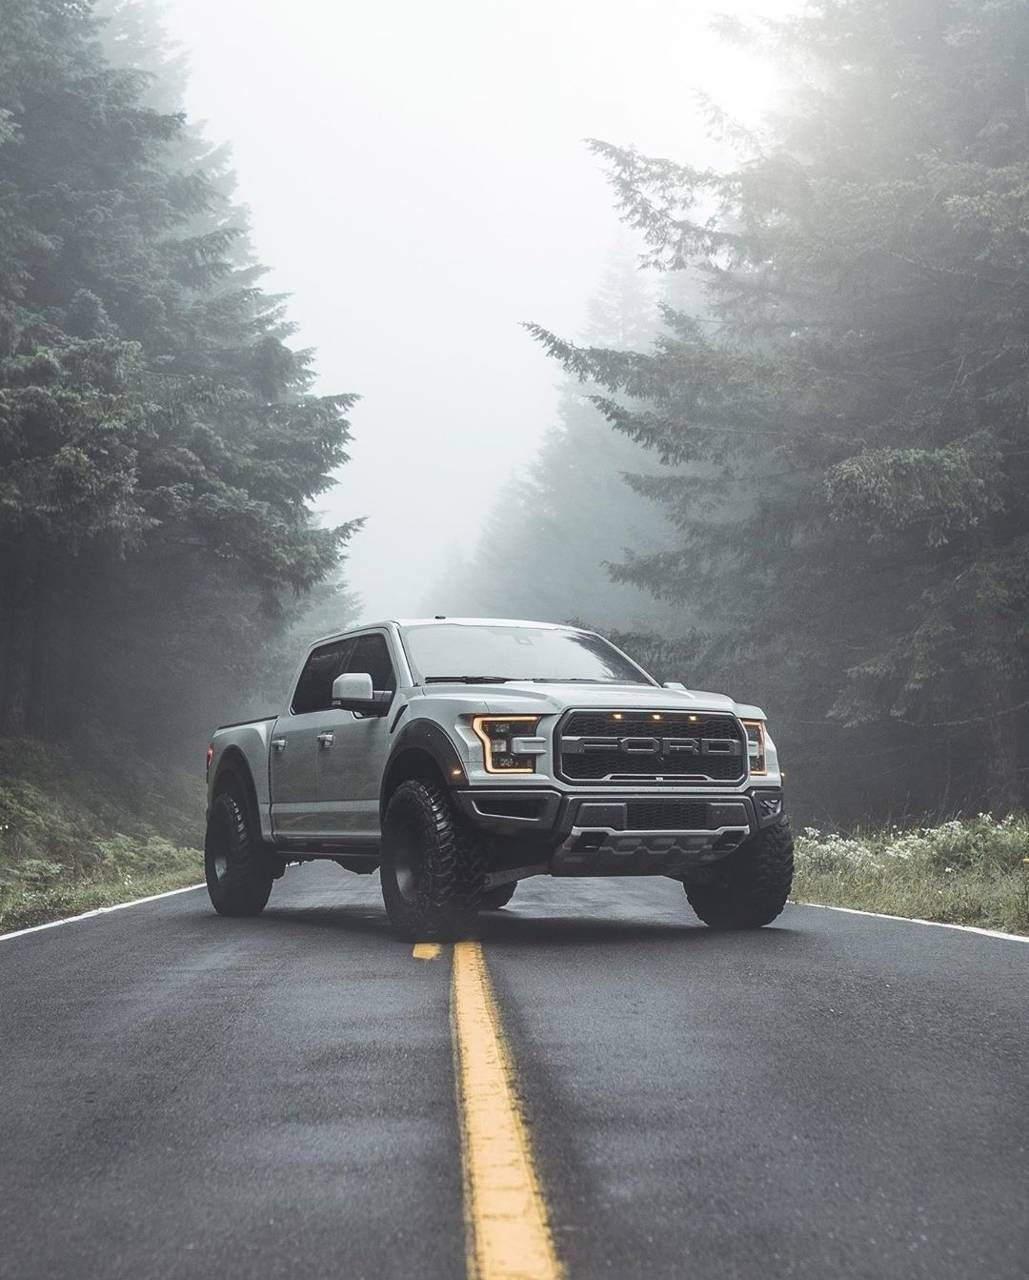 Download Ford Raptor 2019 Wallpaper By Zezooo90036 E2 Free On Zedge Now Browse Millions Of Popular Car Wallpapers And Ford Raptor Ford Trucks Dream Cars Ford raptor iphone x wallpaper